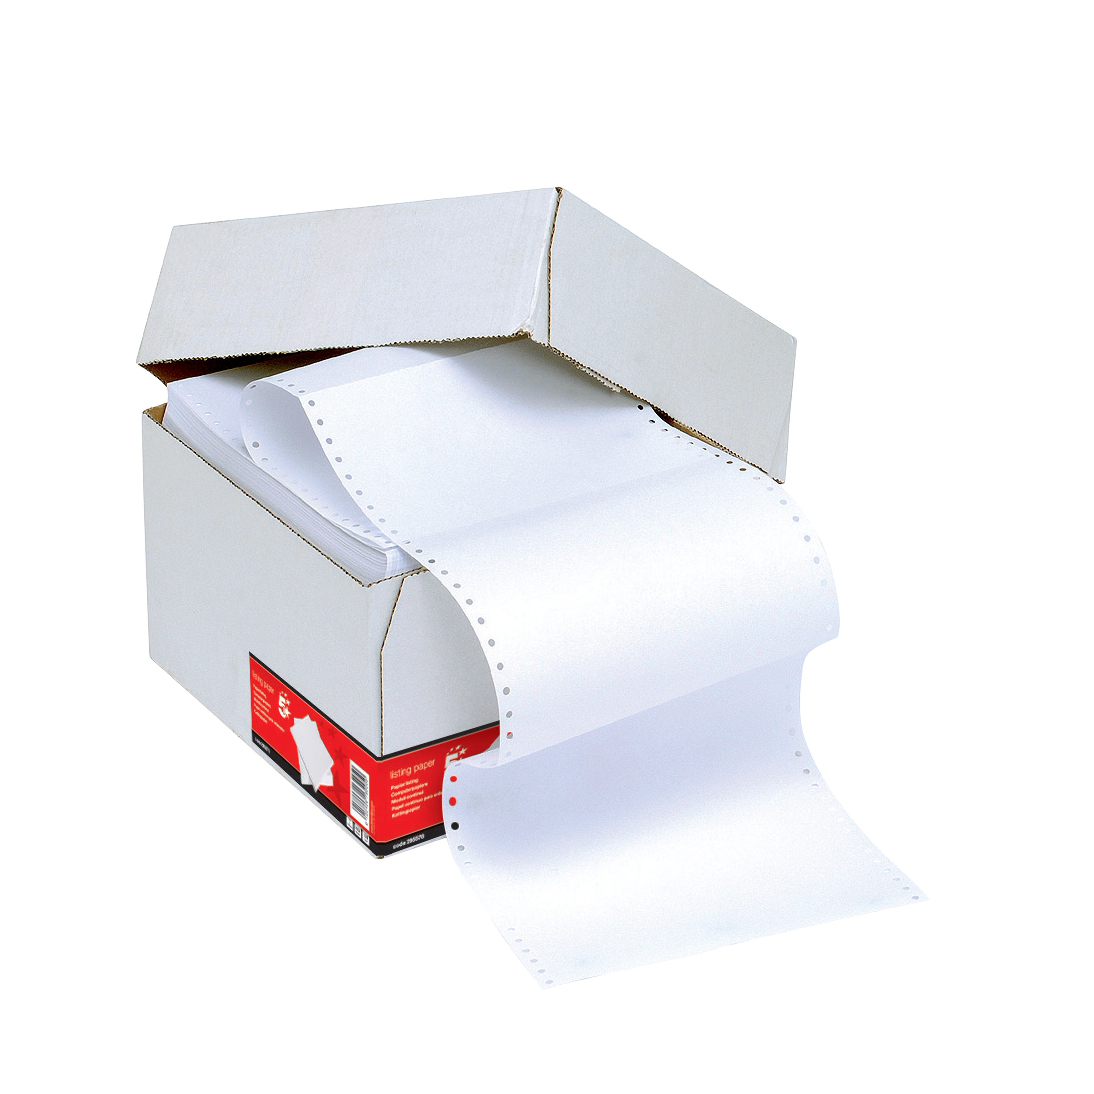 Listing Paper 5 Star Office Listing Paper 1-Part Perforated 60gsm 11inchx241mm Plain 2000 Sheets